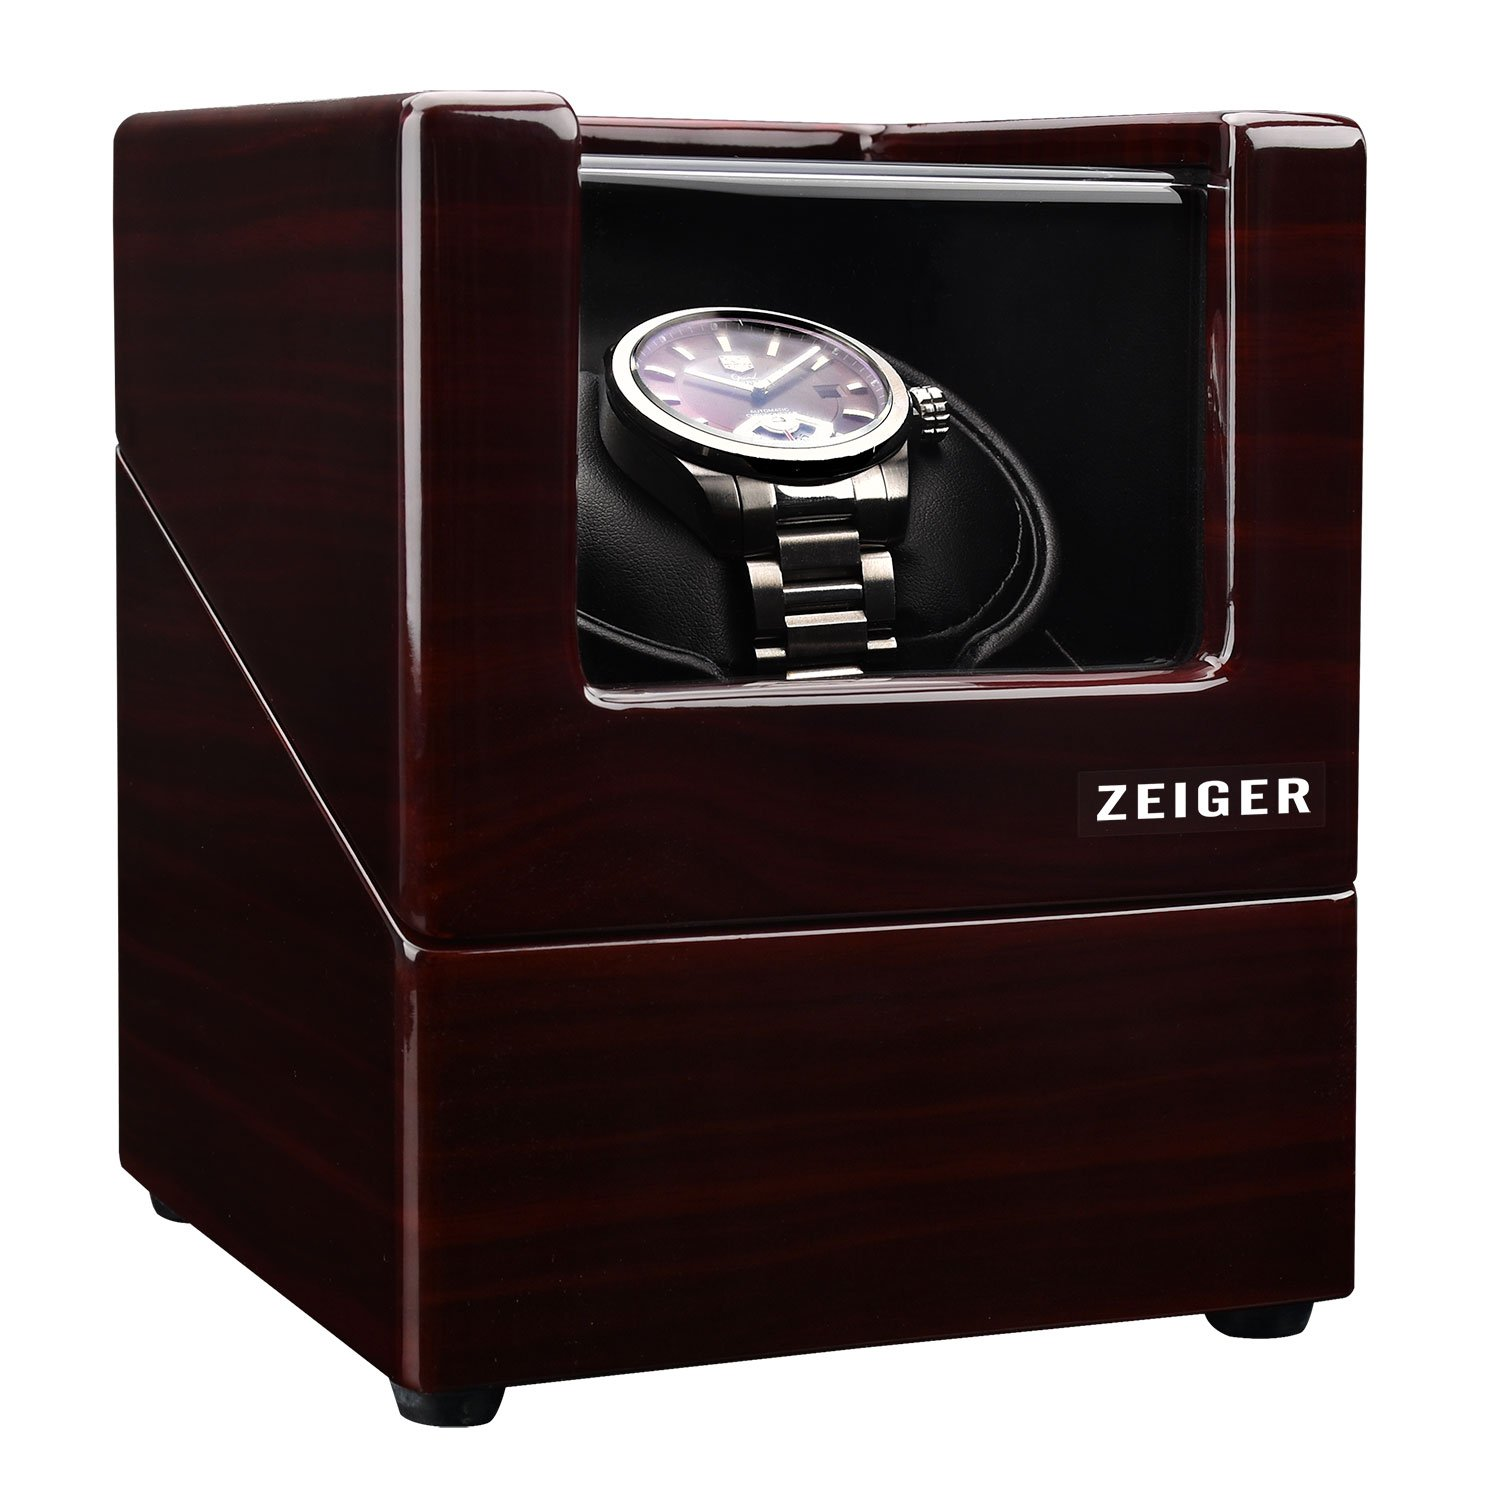 Zeiger Single Watch Winder for Large Watch Box Case with Quiet Automatic Japanese Mabuchi Motor Piano Paint s002